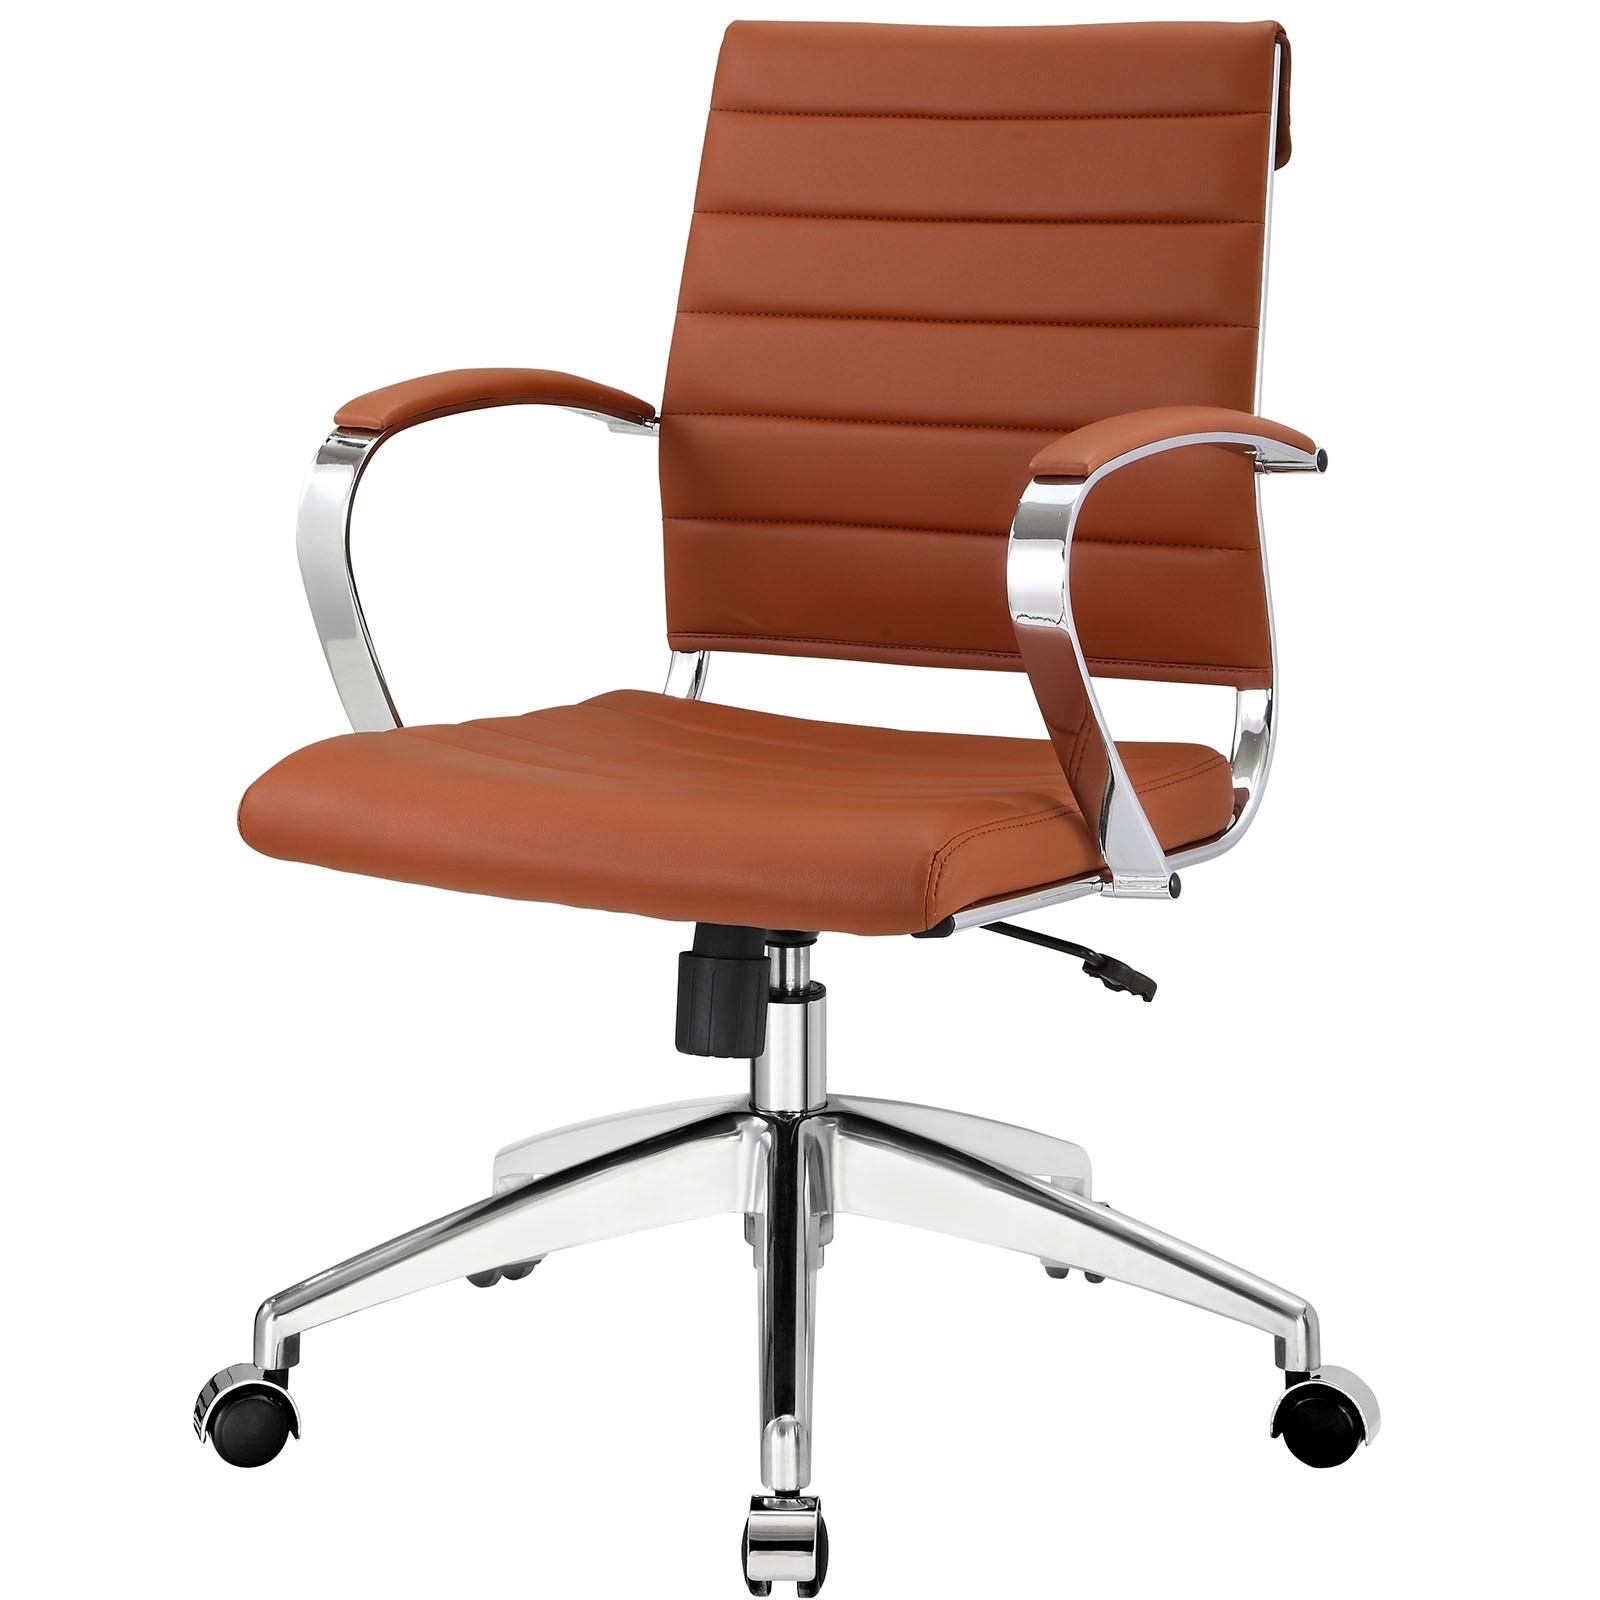 Well Liked Tan Brown Mid Back Executive Office Chairs With Jive Mid Back Office Chair, Terracotta Buy Online At Best Price (View 16 of 20)